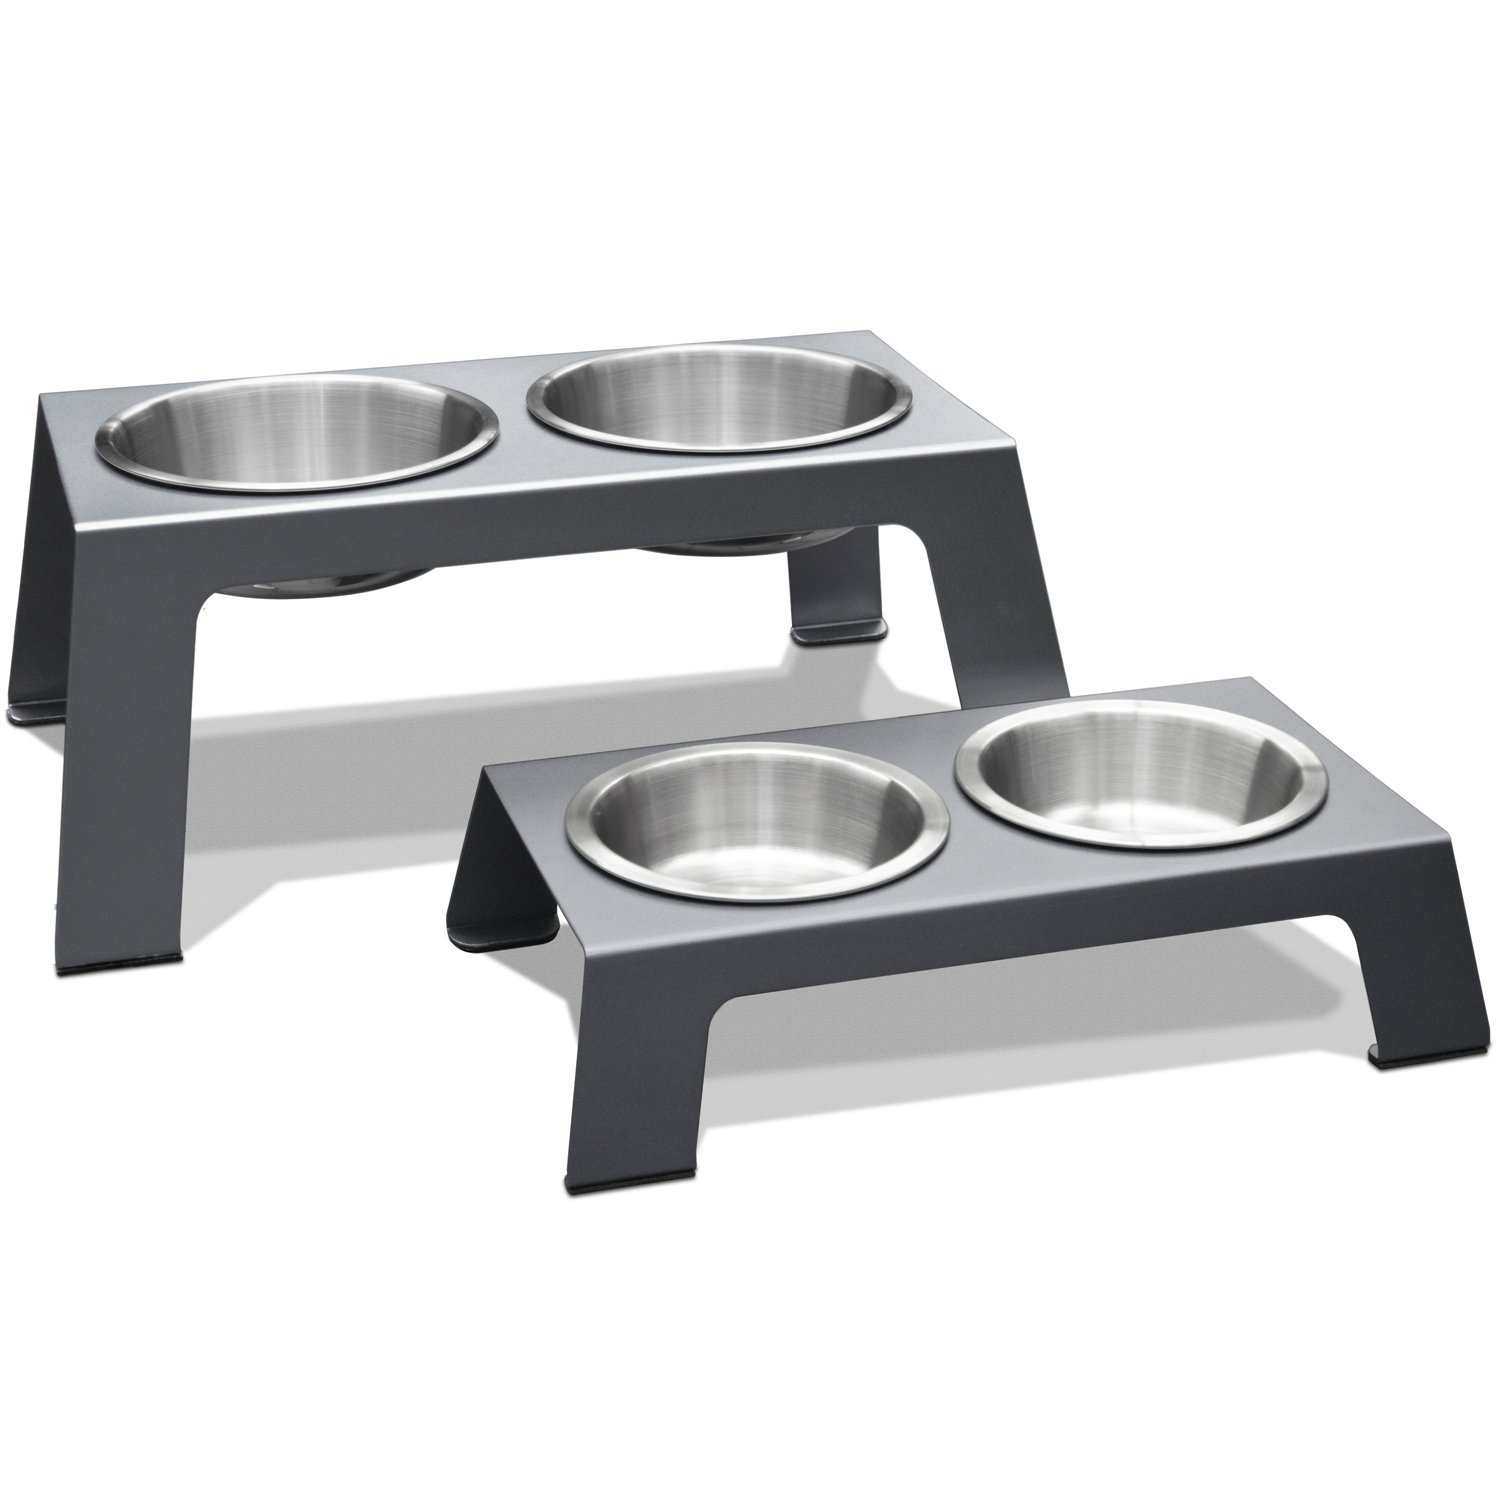 PetFusion Elevated Pet Feeder in Premium Anodized Aluminum (Short 4''). 3 US FOOD GRADE SS bowls, incl shallow 1'' to avoid whisker fatigue